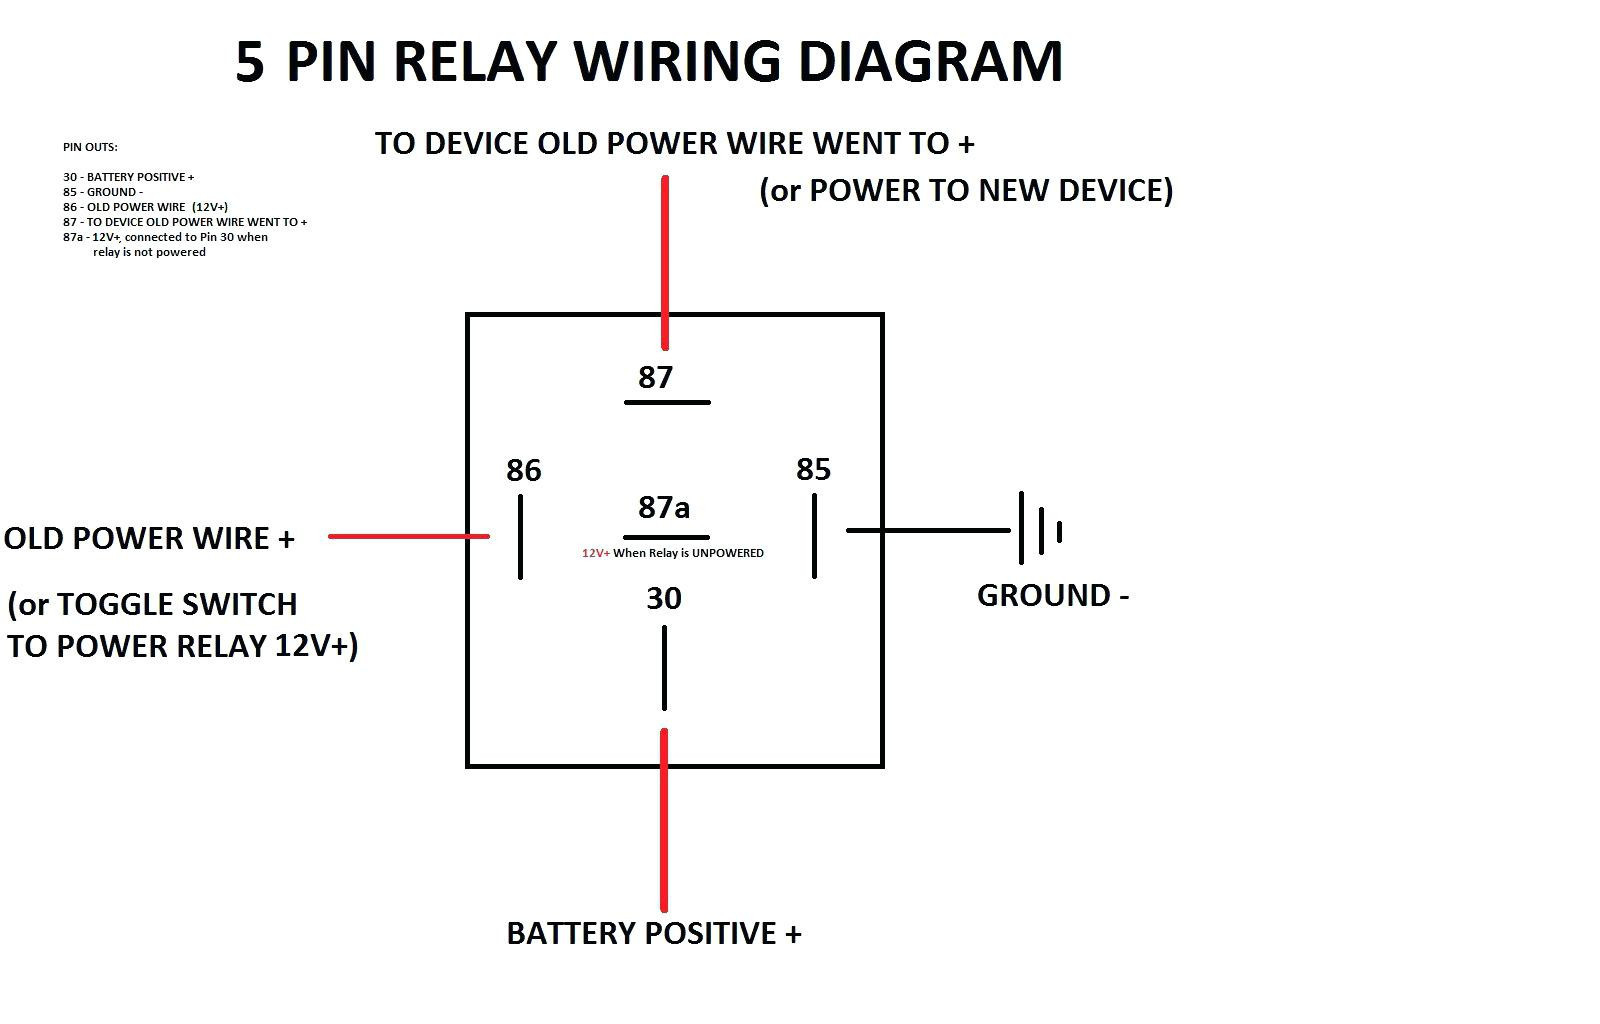 Spdt Relay Wiring Diagram - Wiring Diagrams Click - 12 Volt Relay Wiring Diagram